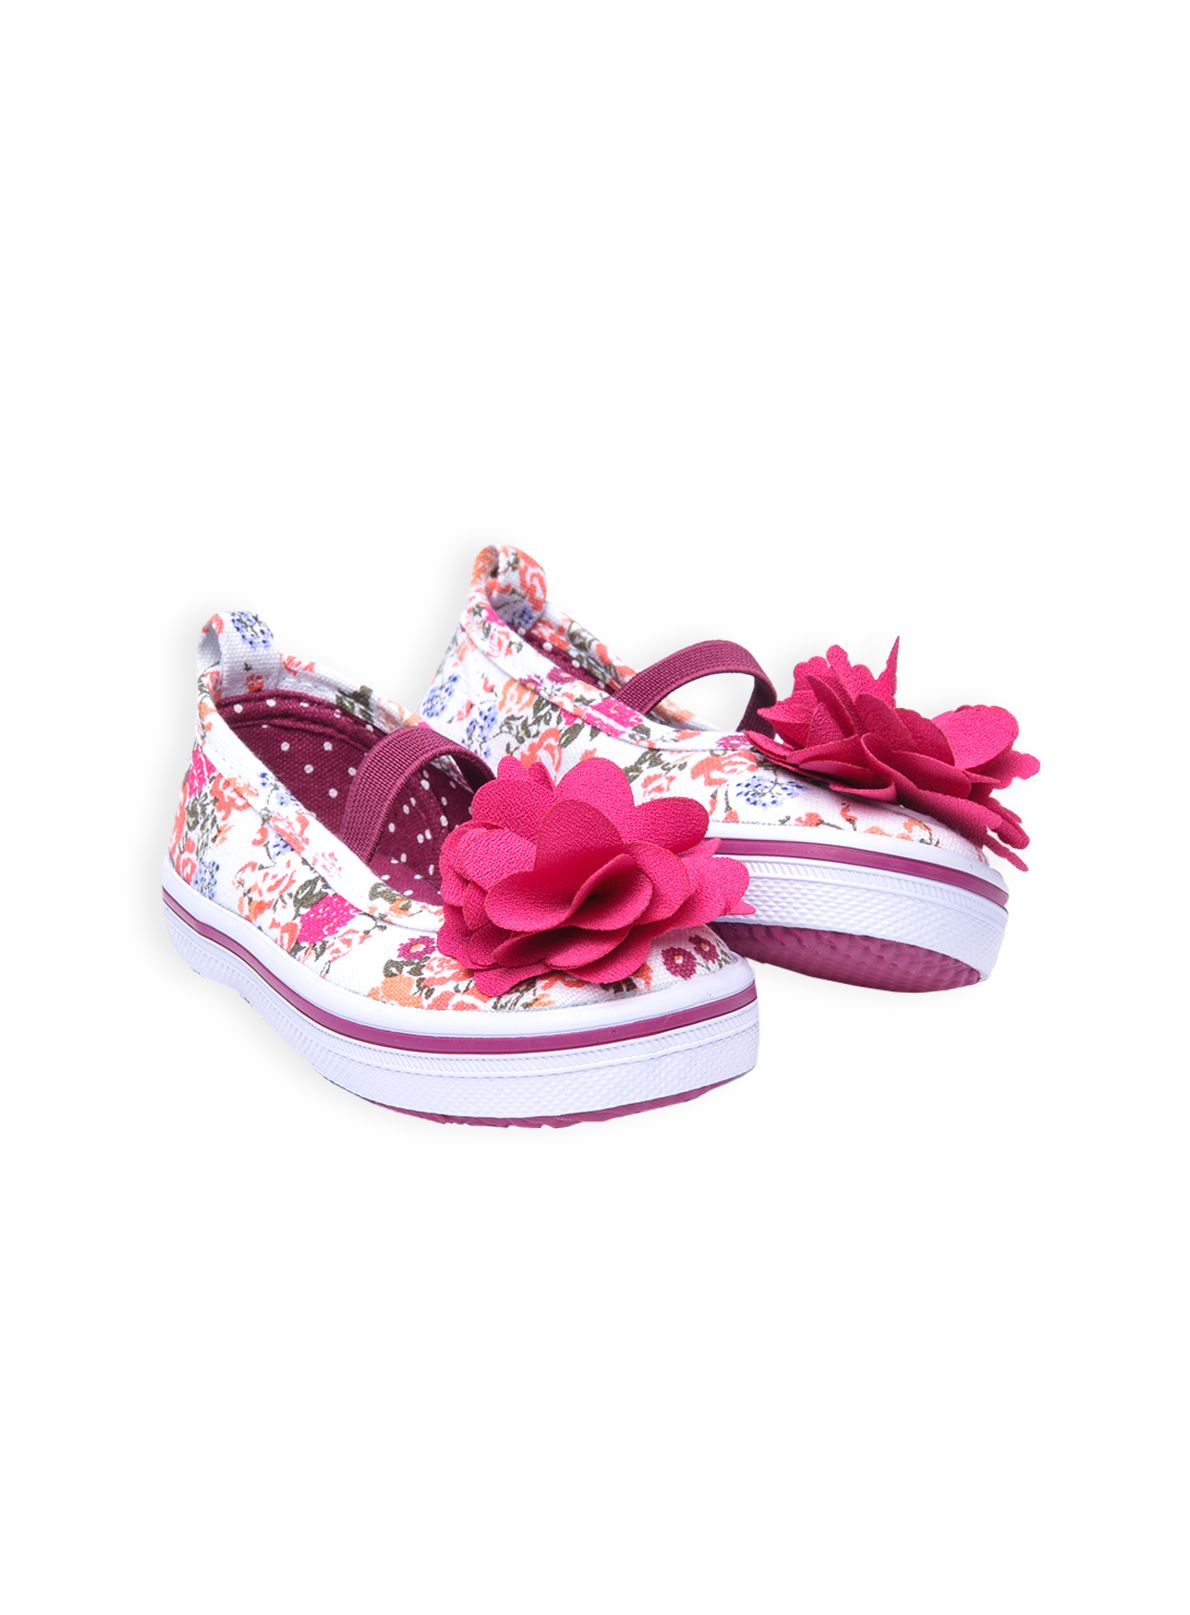 Girls floral bloom canvas ballerina